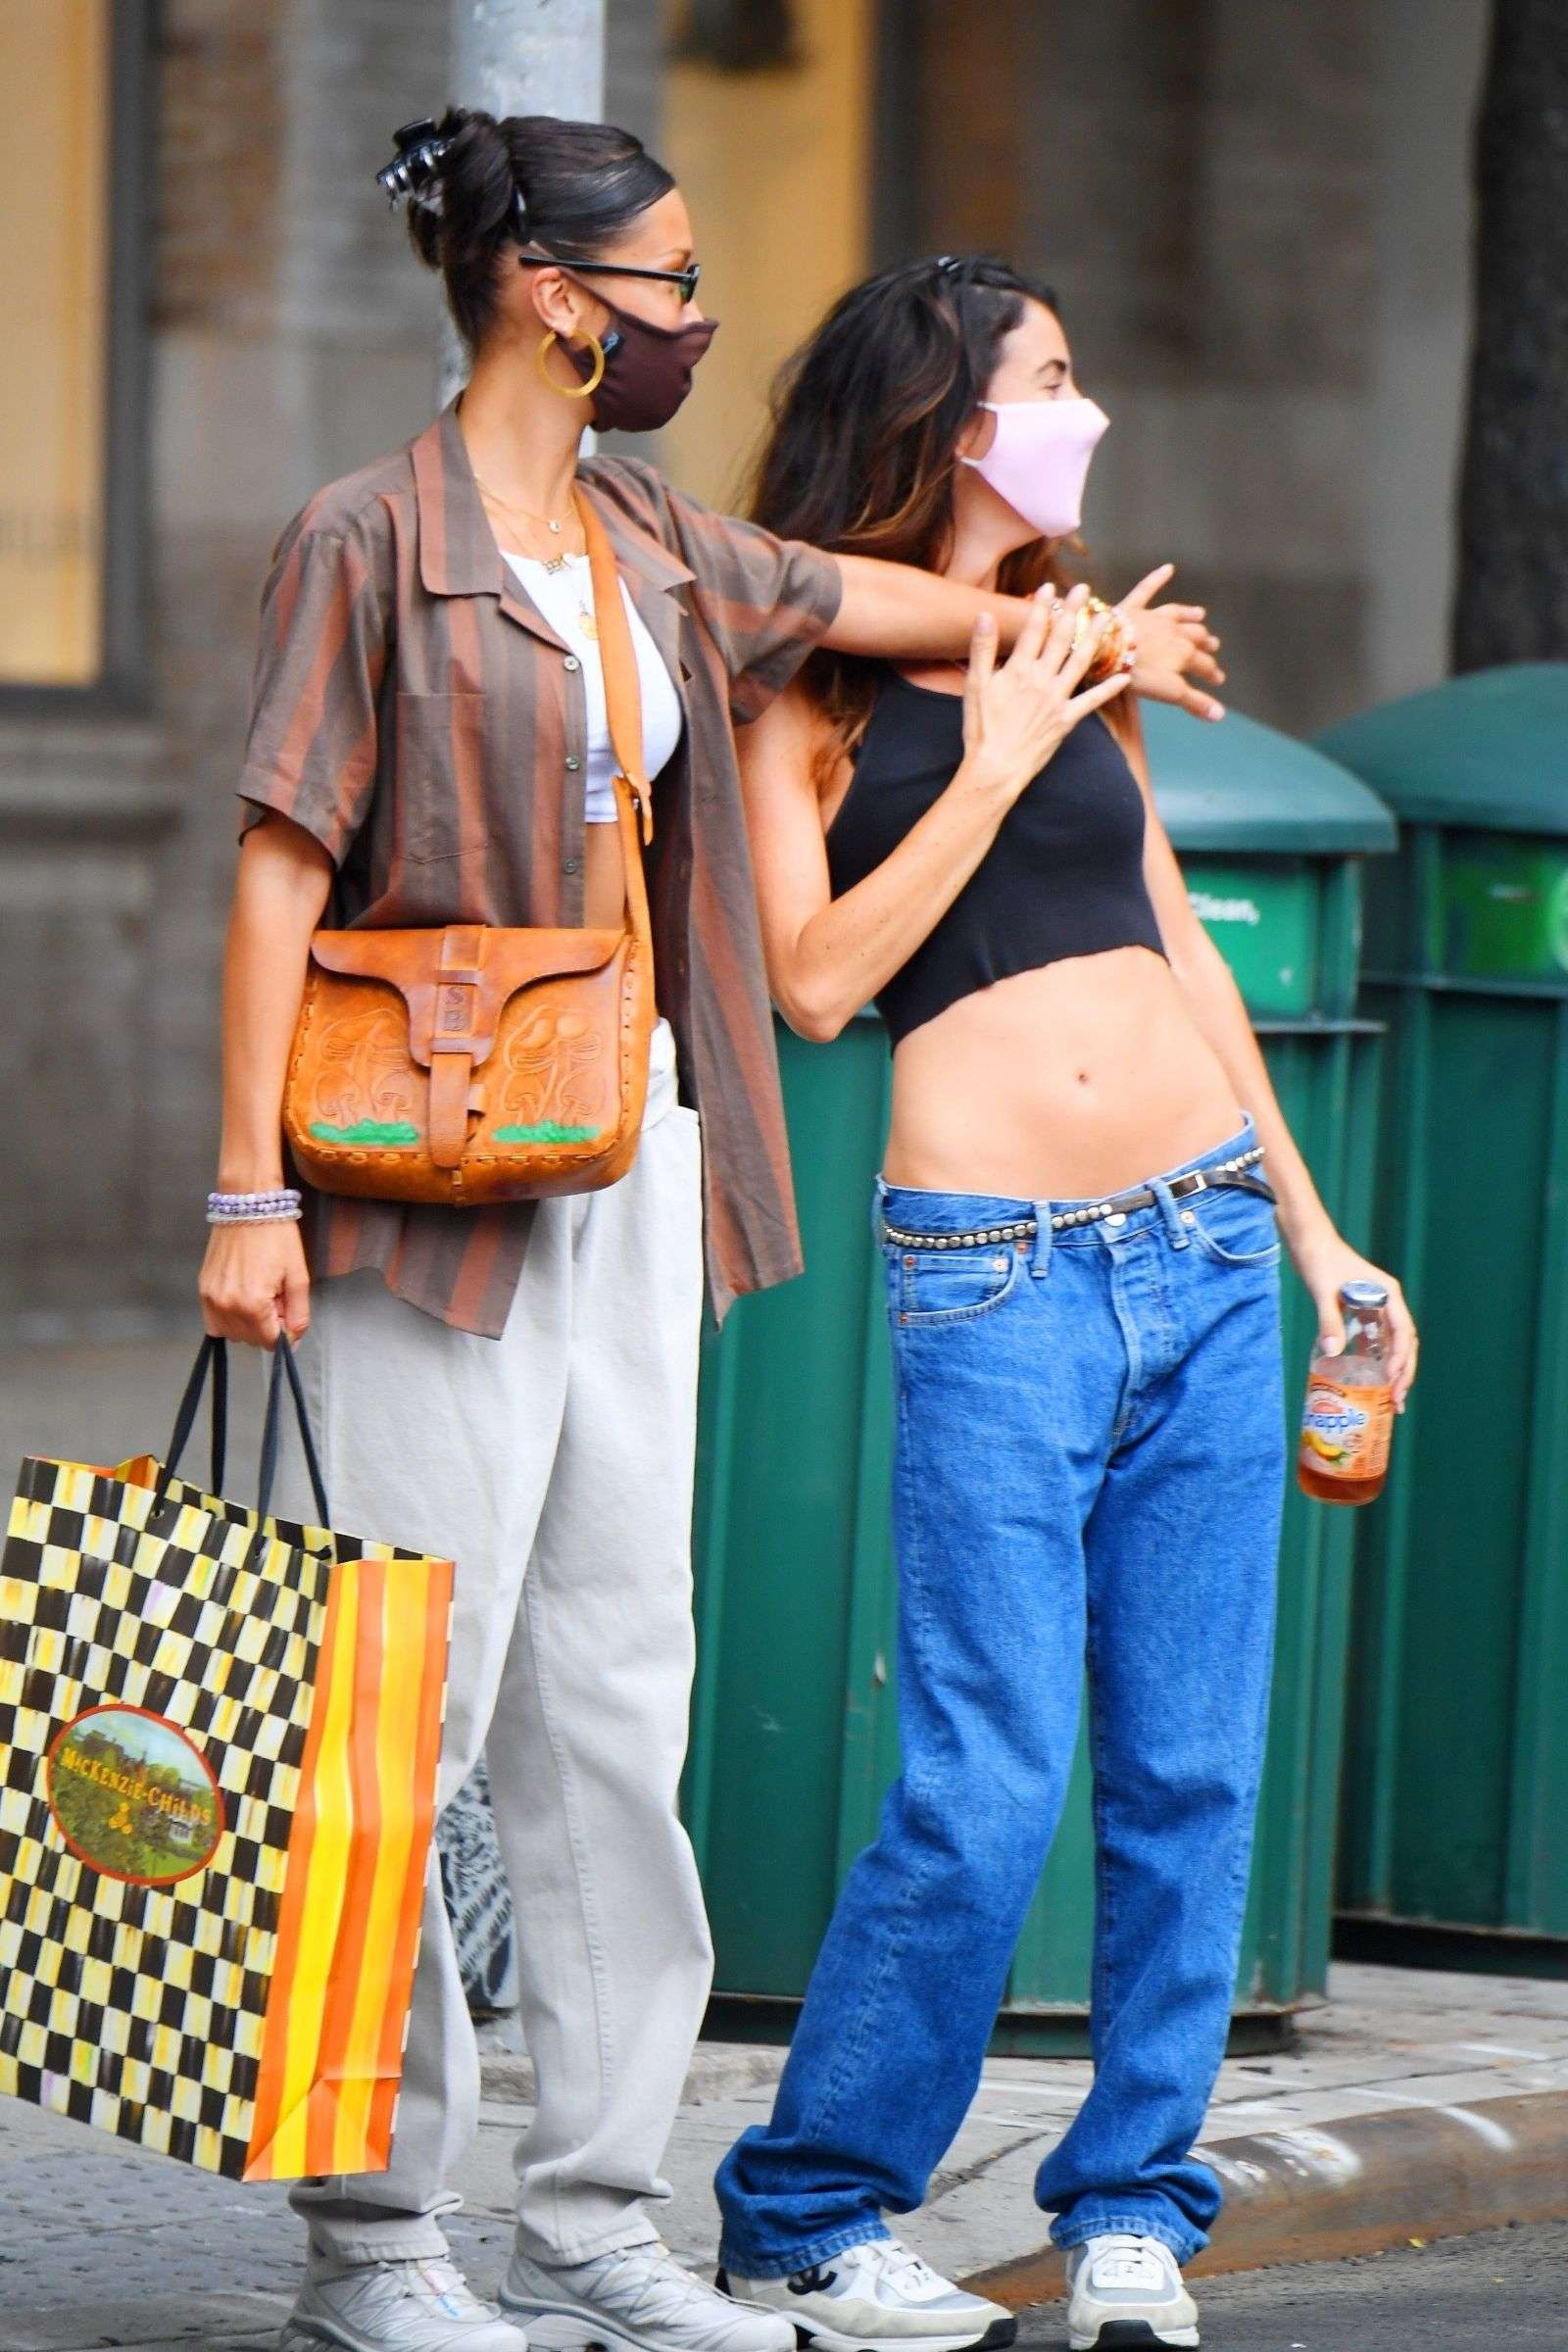 Bella Hadid enjoys a shopping trip in the big apple with a friend in New York